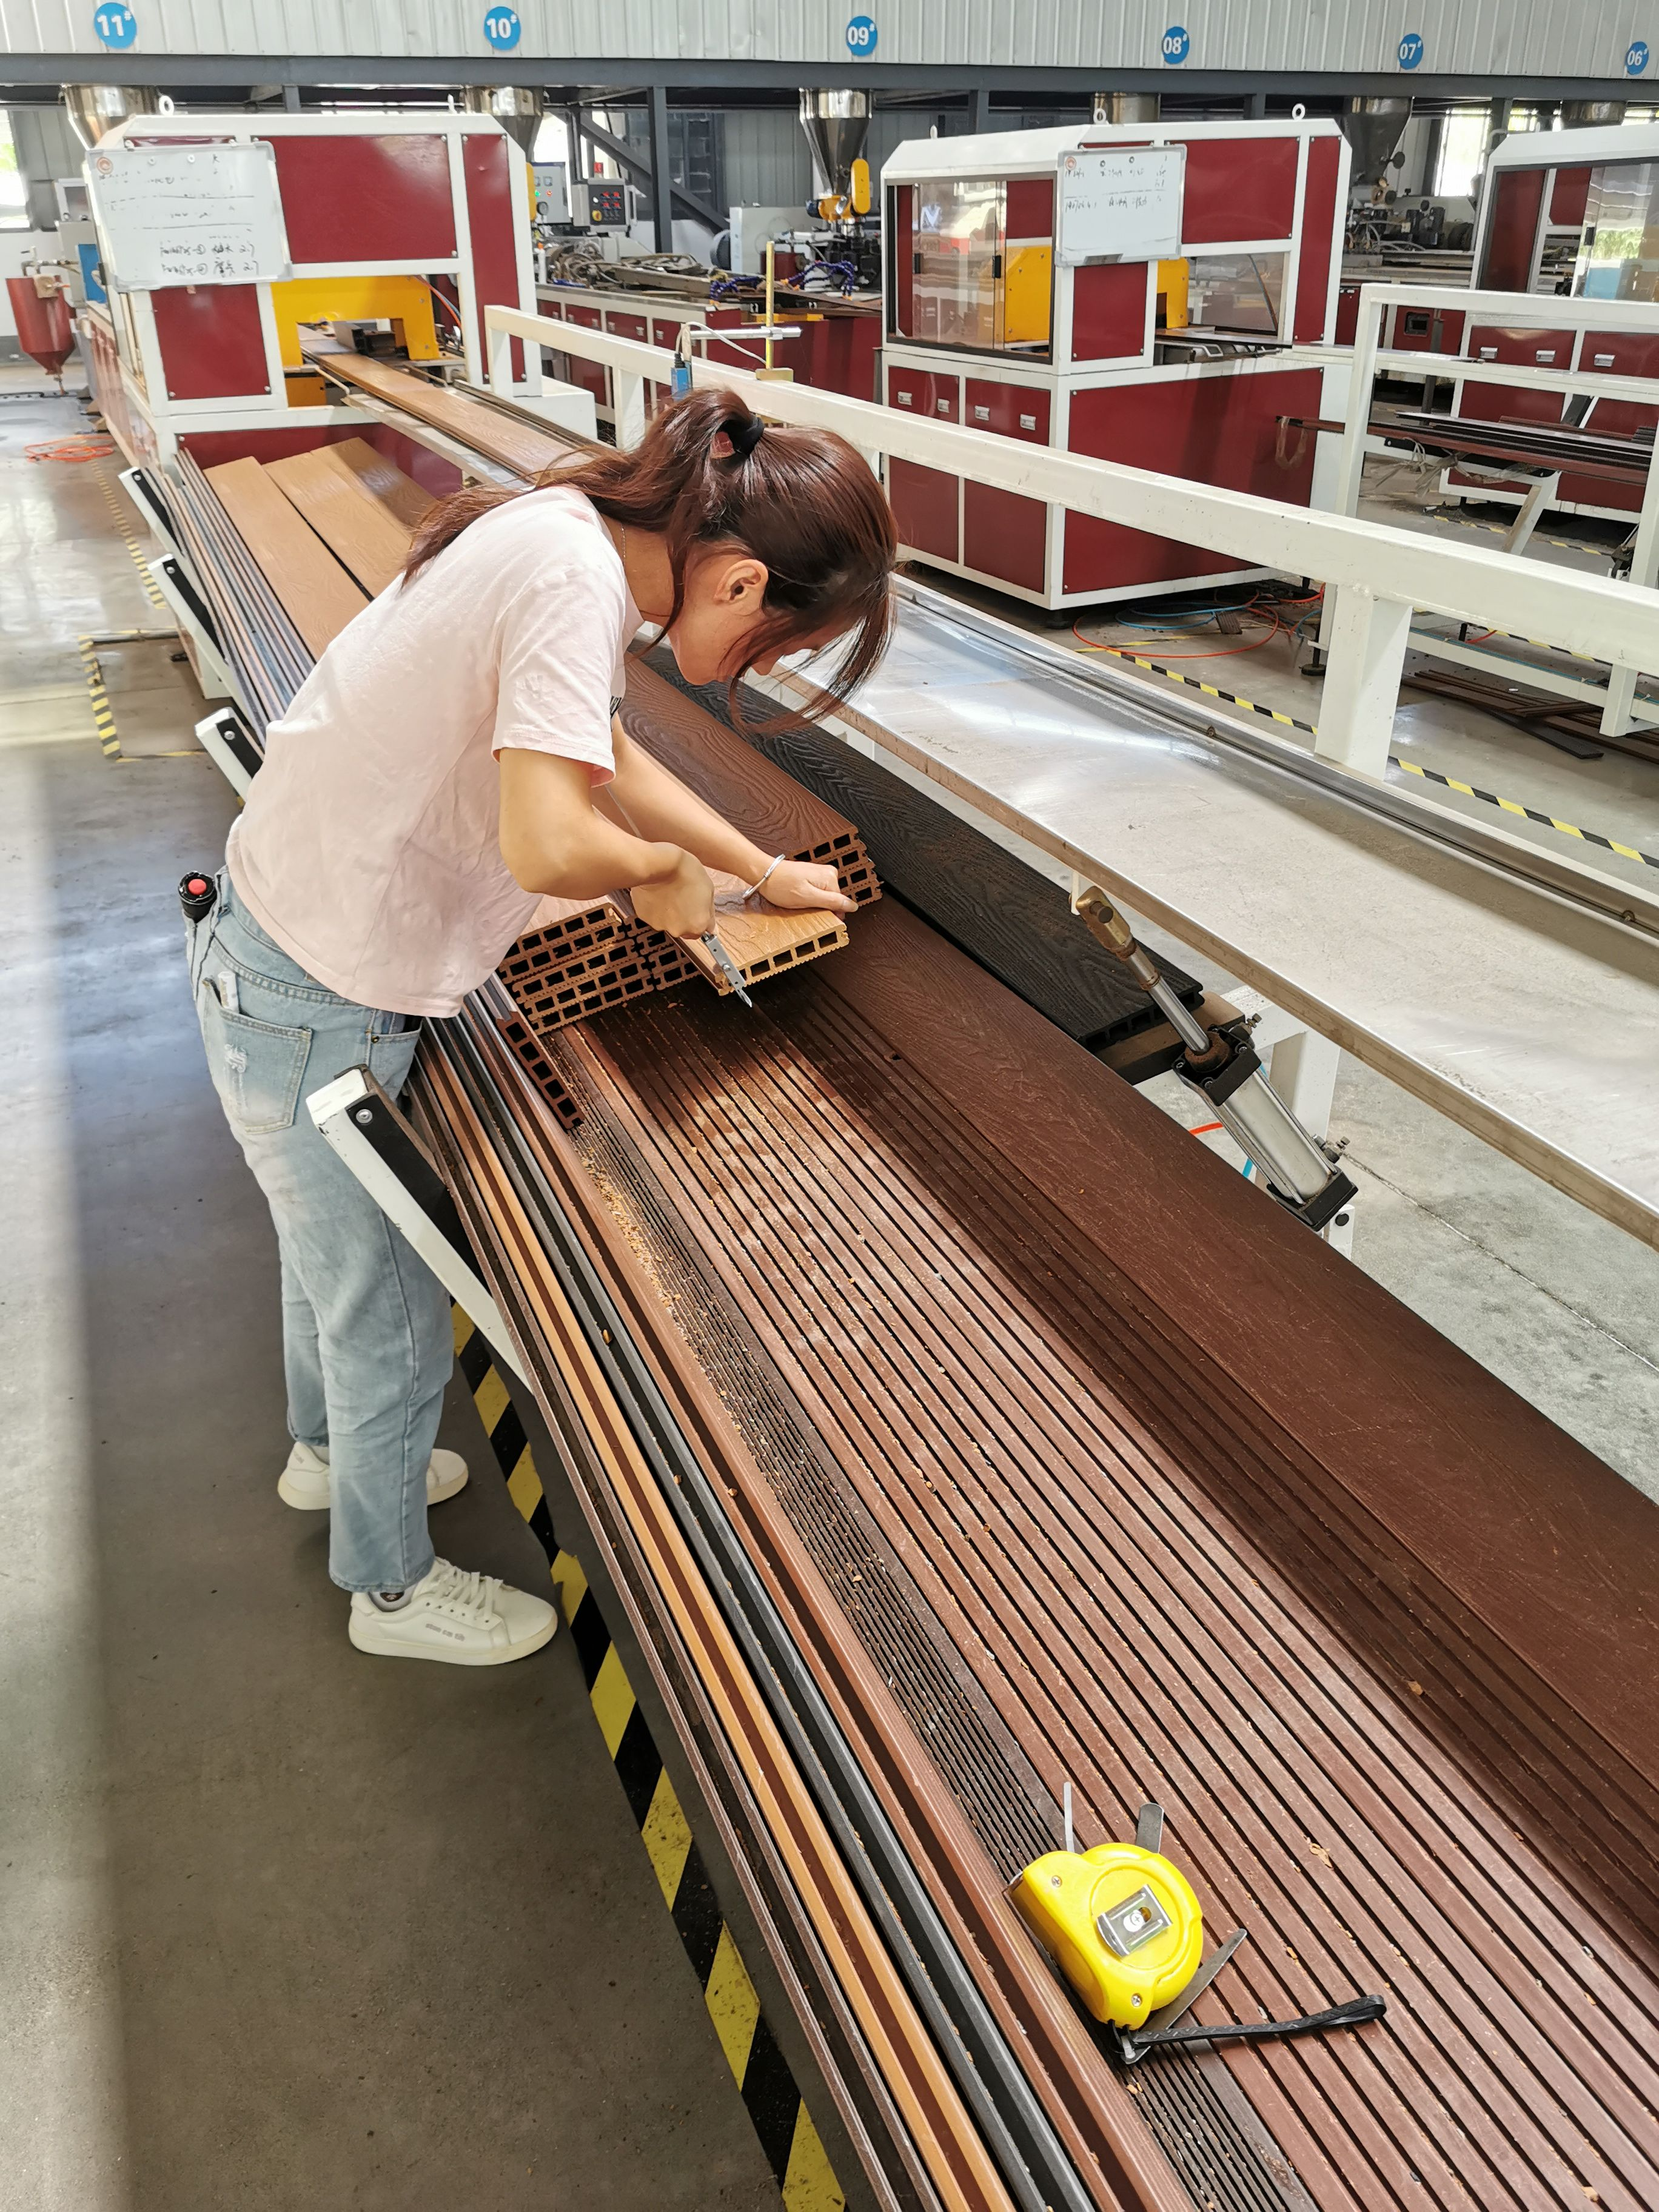 Our staff is doing quality checking on production line